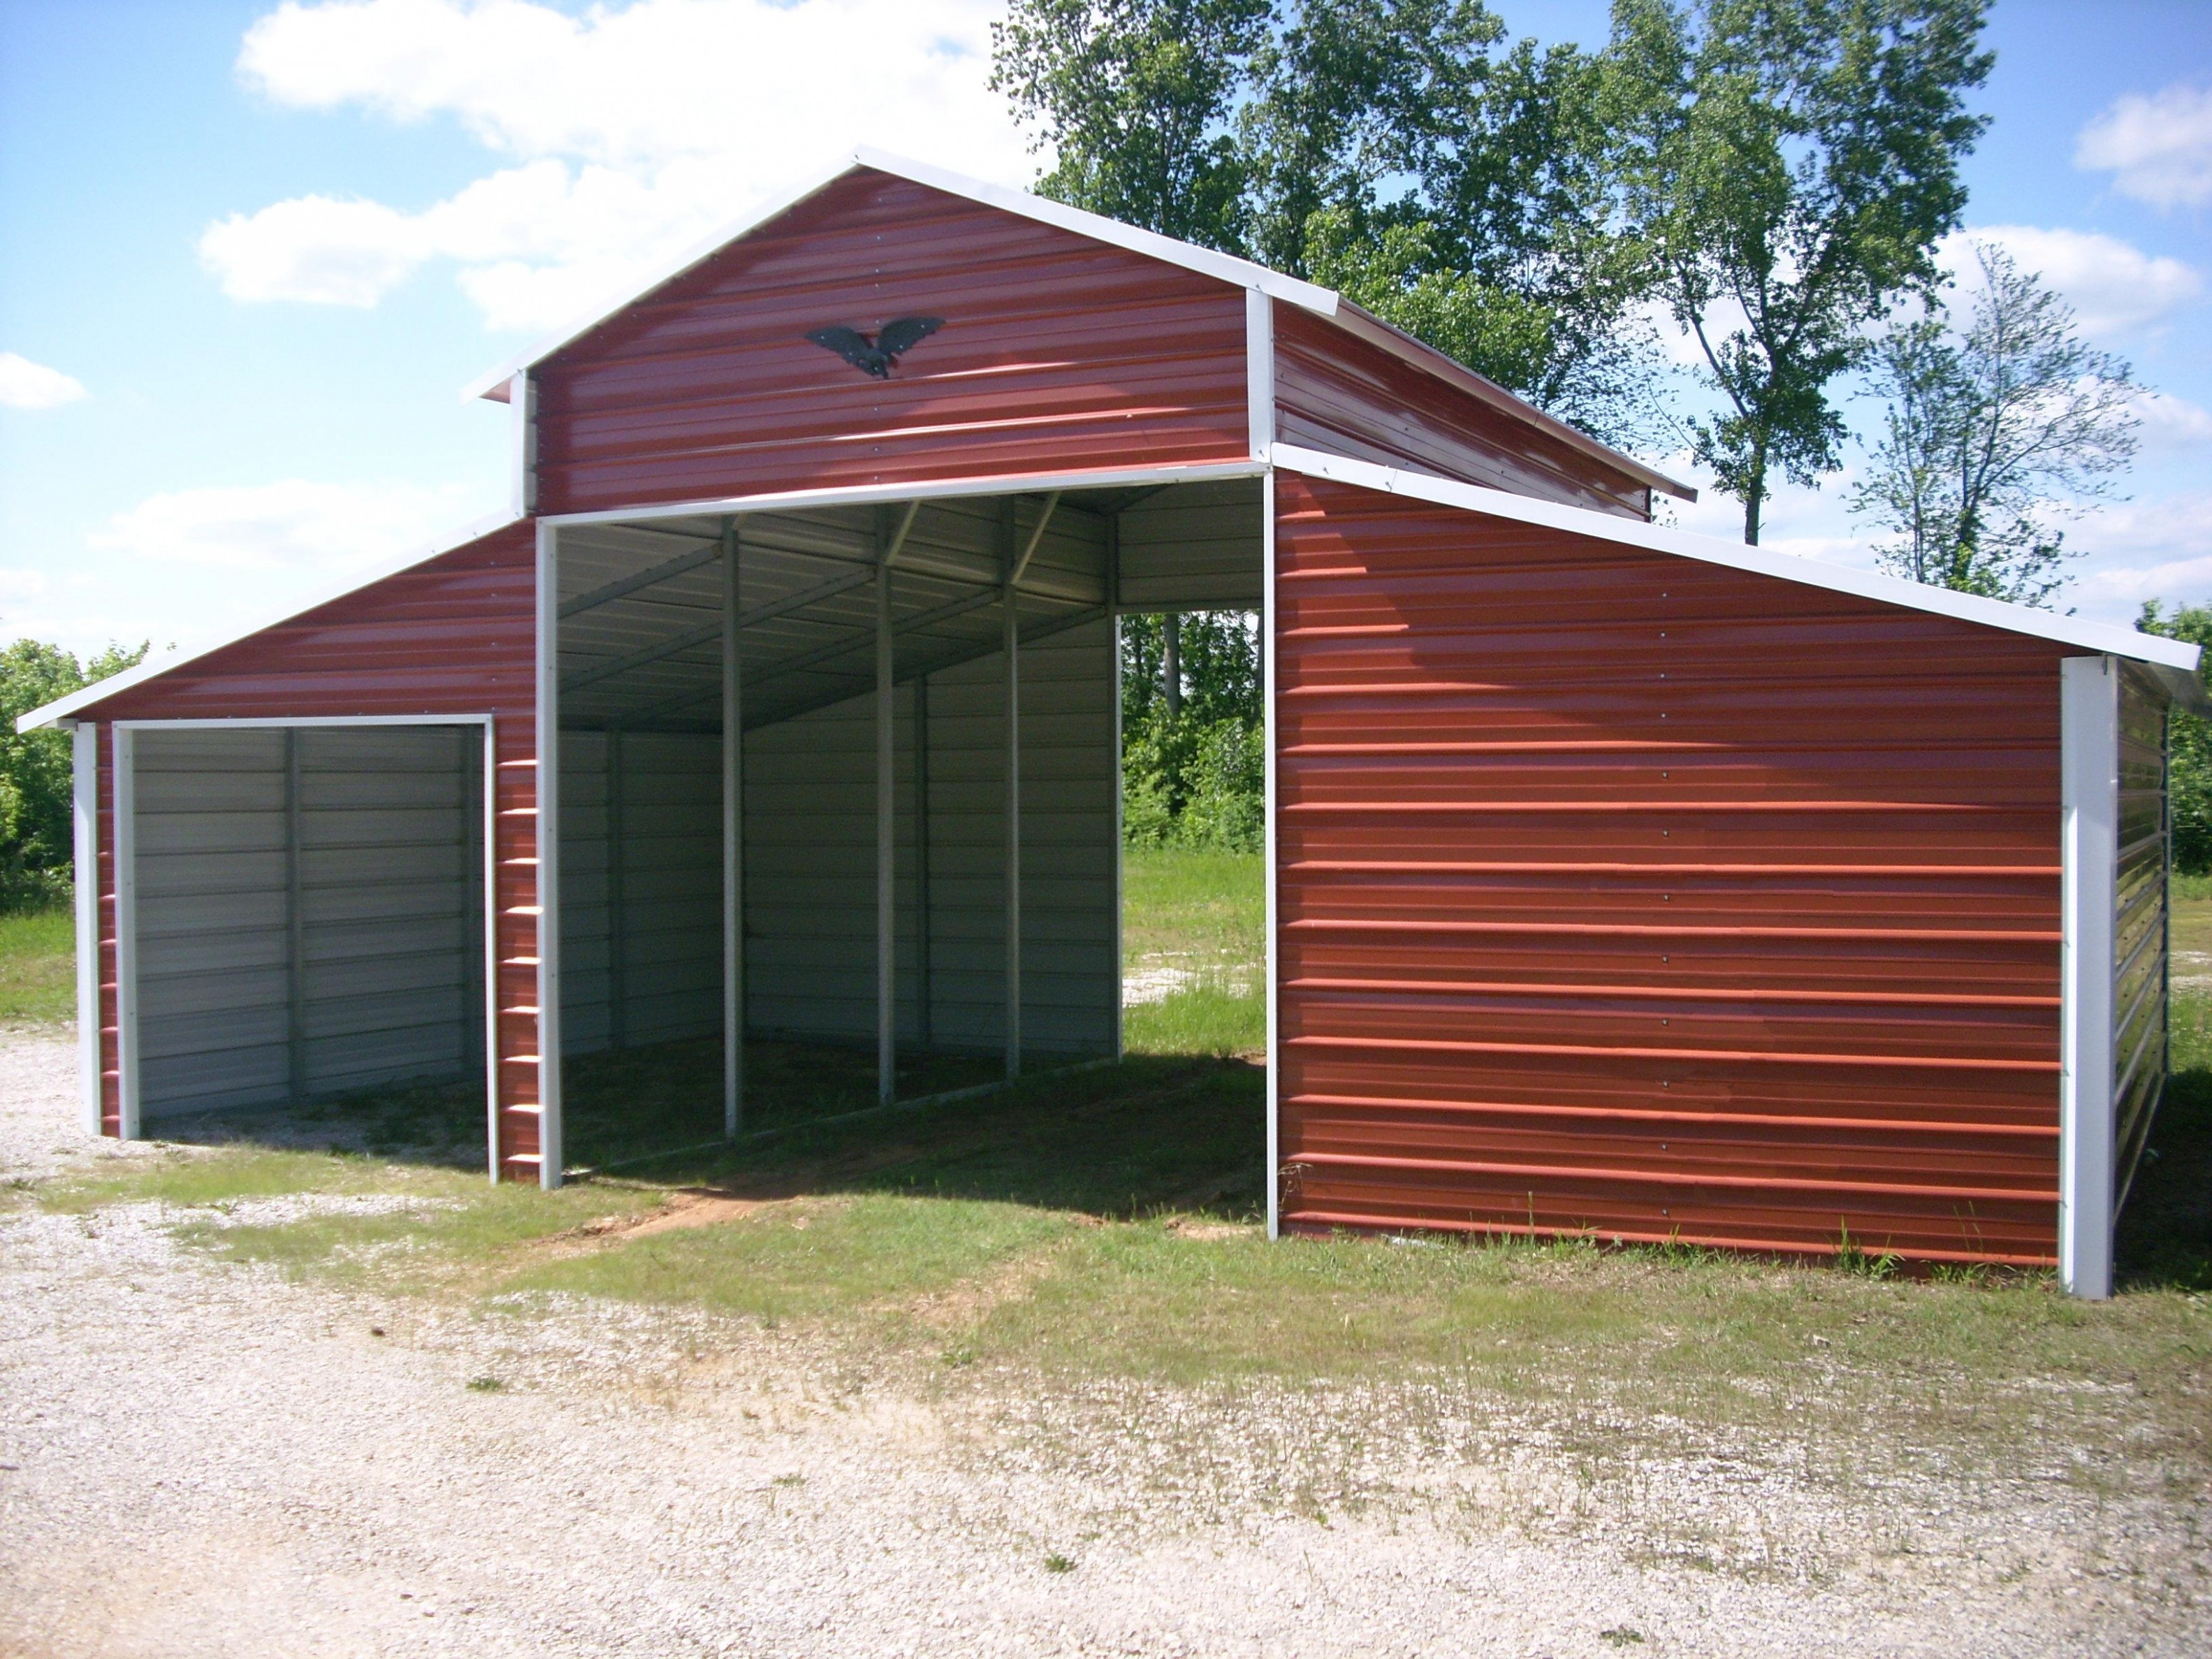 Ten Metal Shed With Carport That Had Gone Way Too Far | metal shed with carport